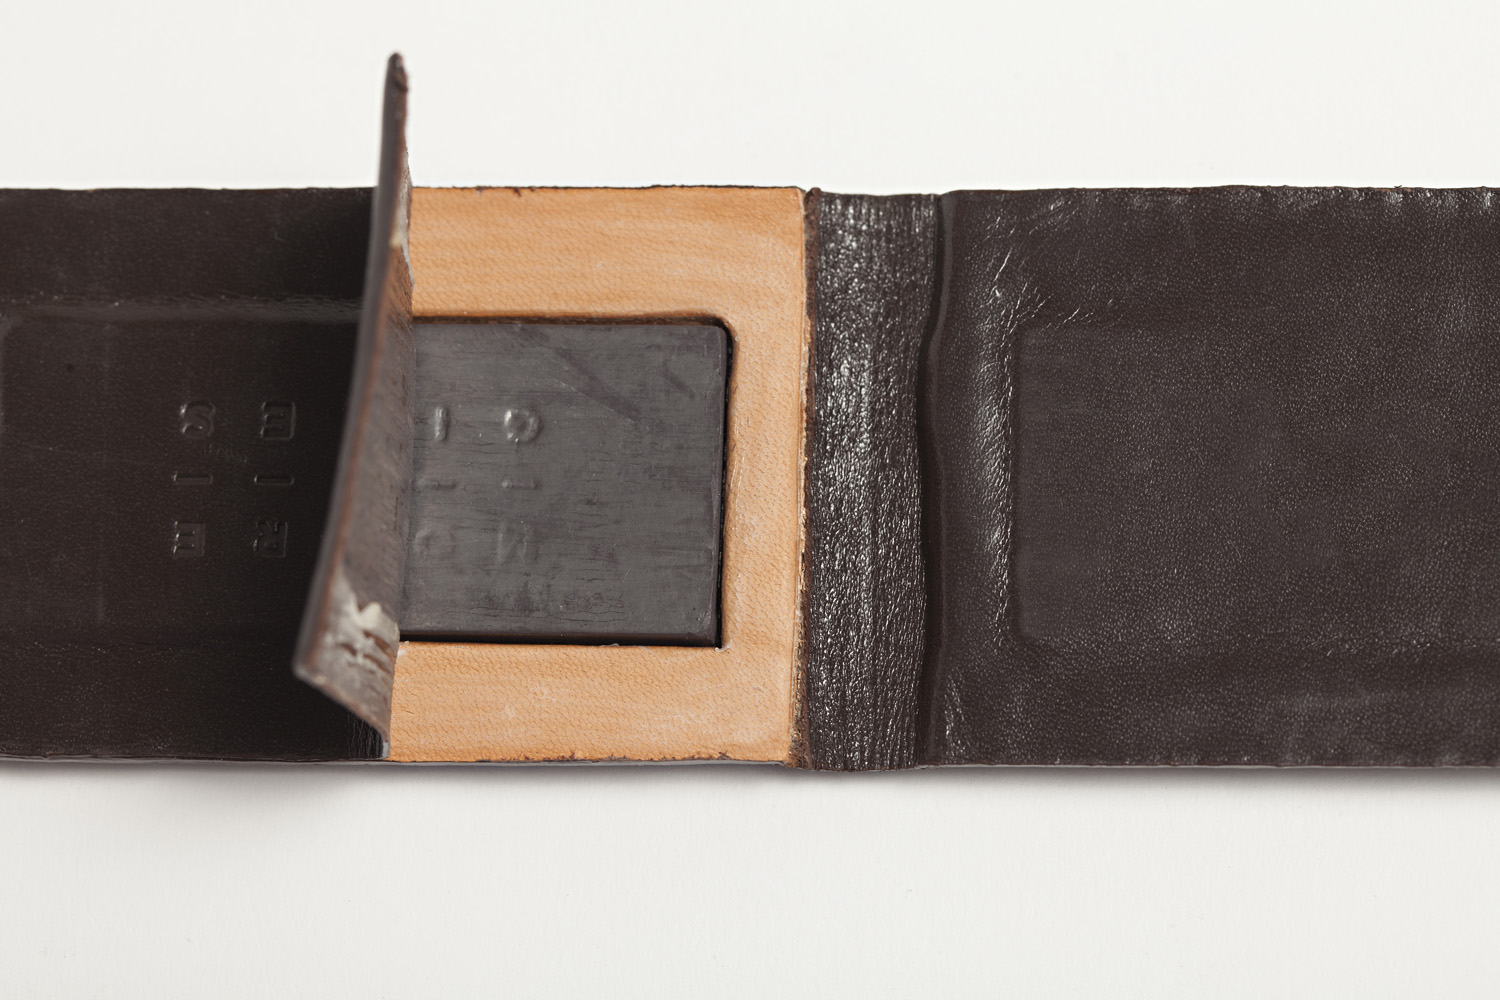 FAQ: Will the magnets on some wallets demagnetize my credit card?